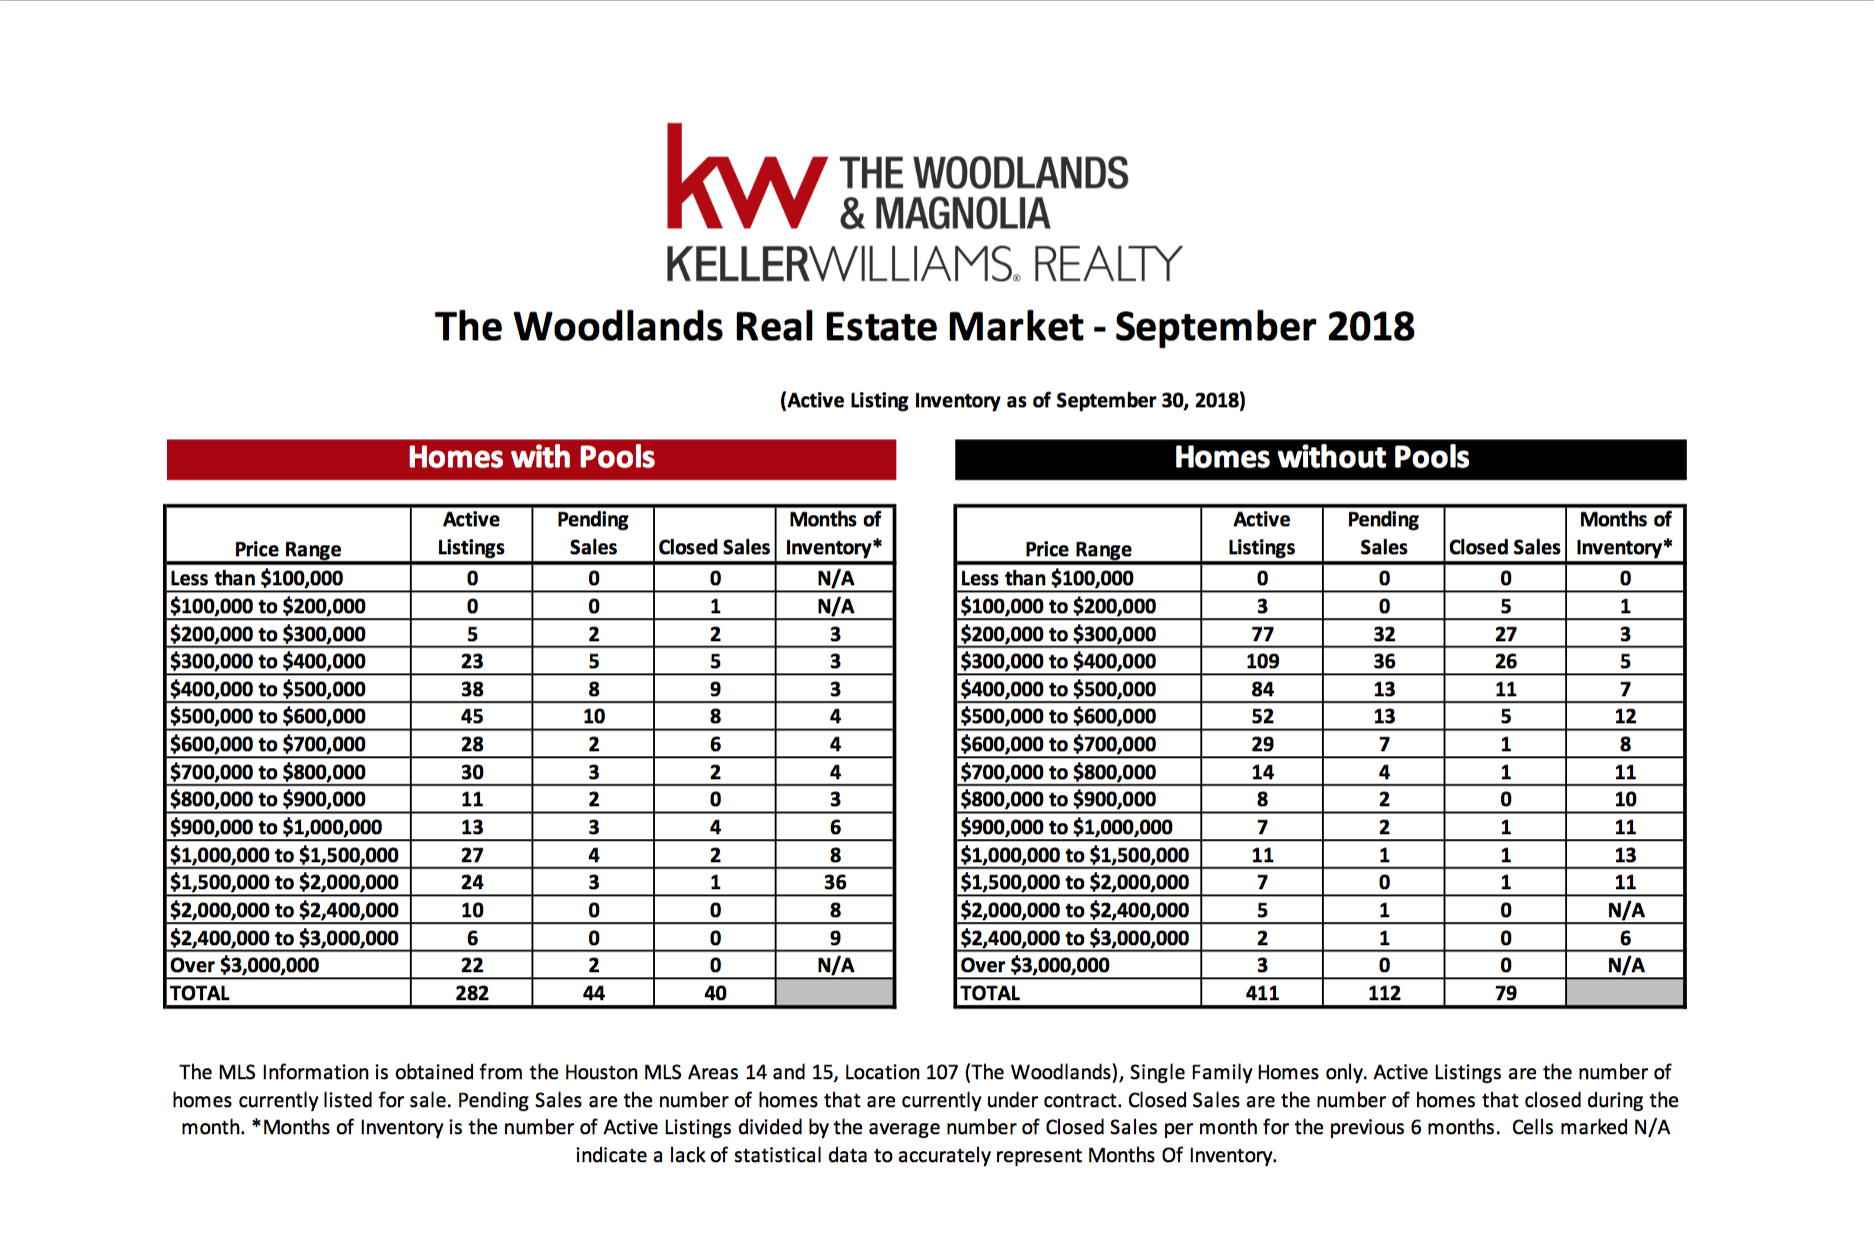 , September 2018 MarketWatch Report – The Woodlands, KW Woodlands